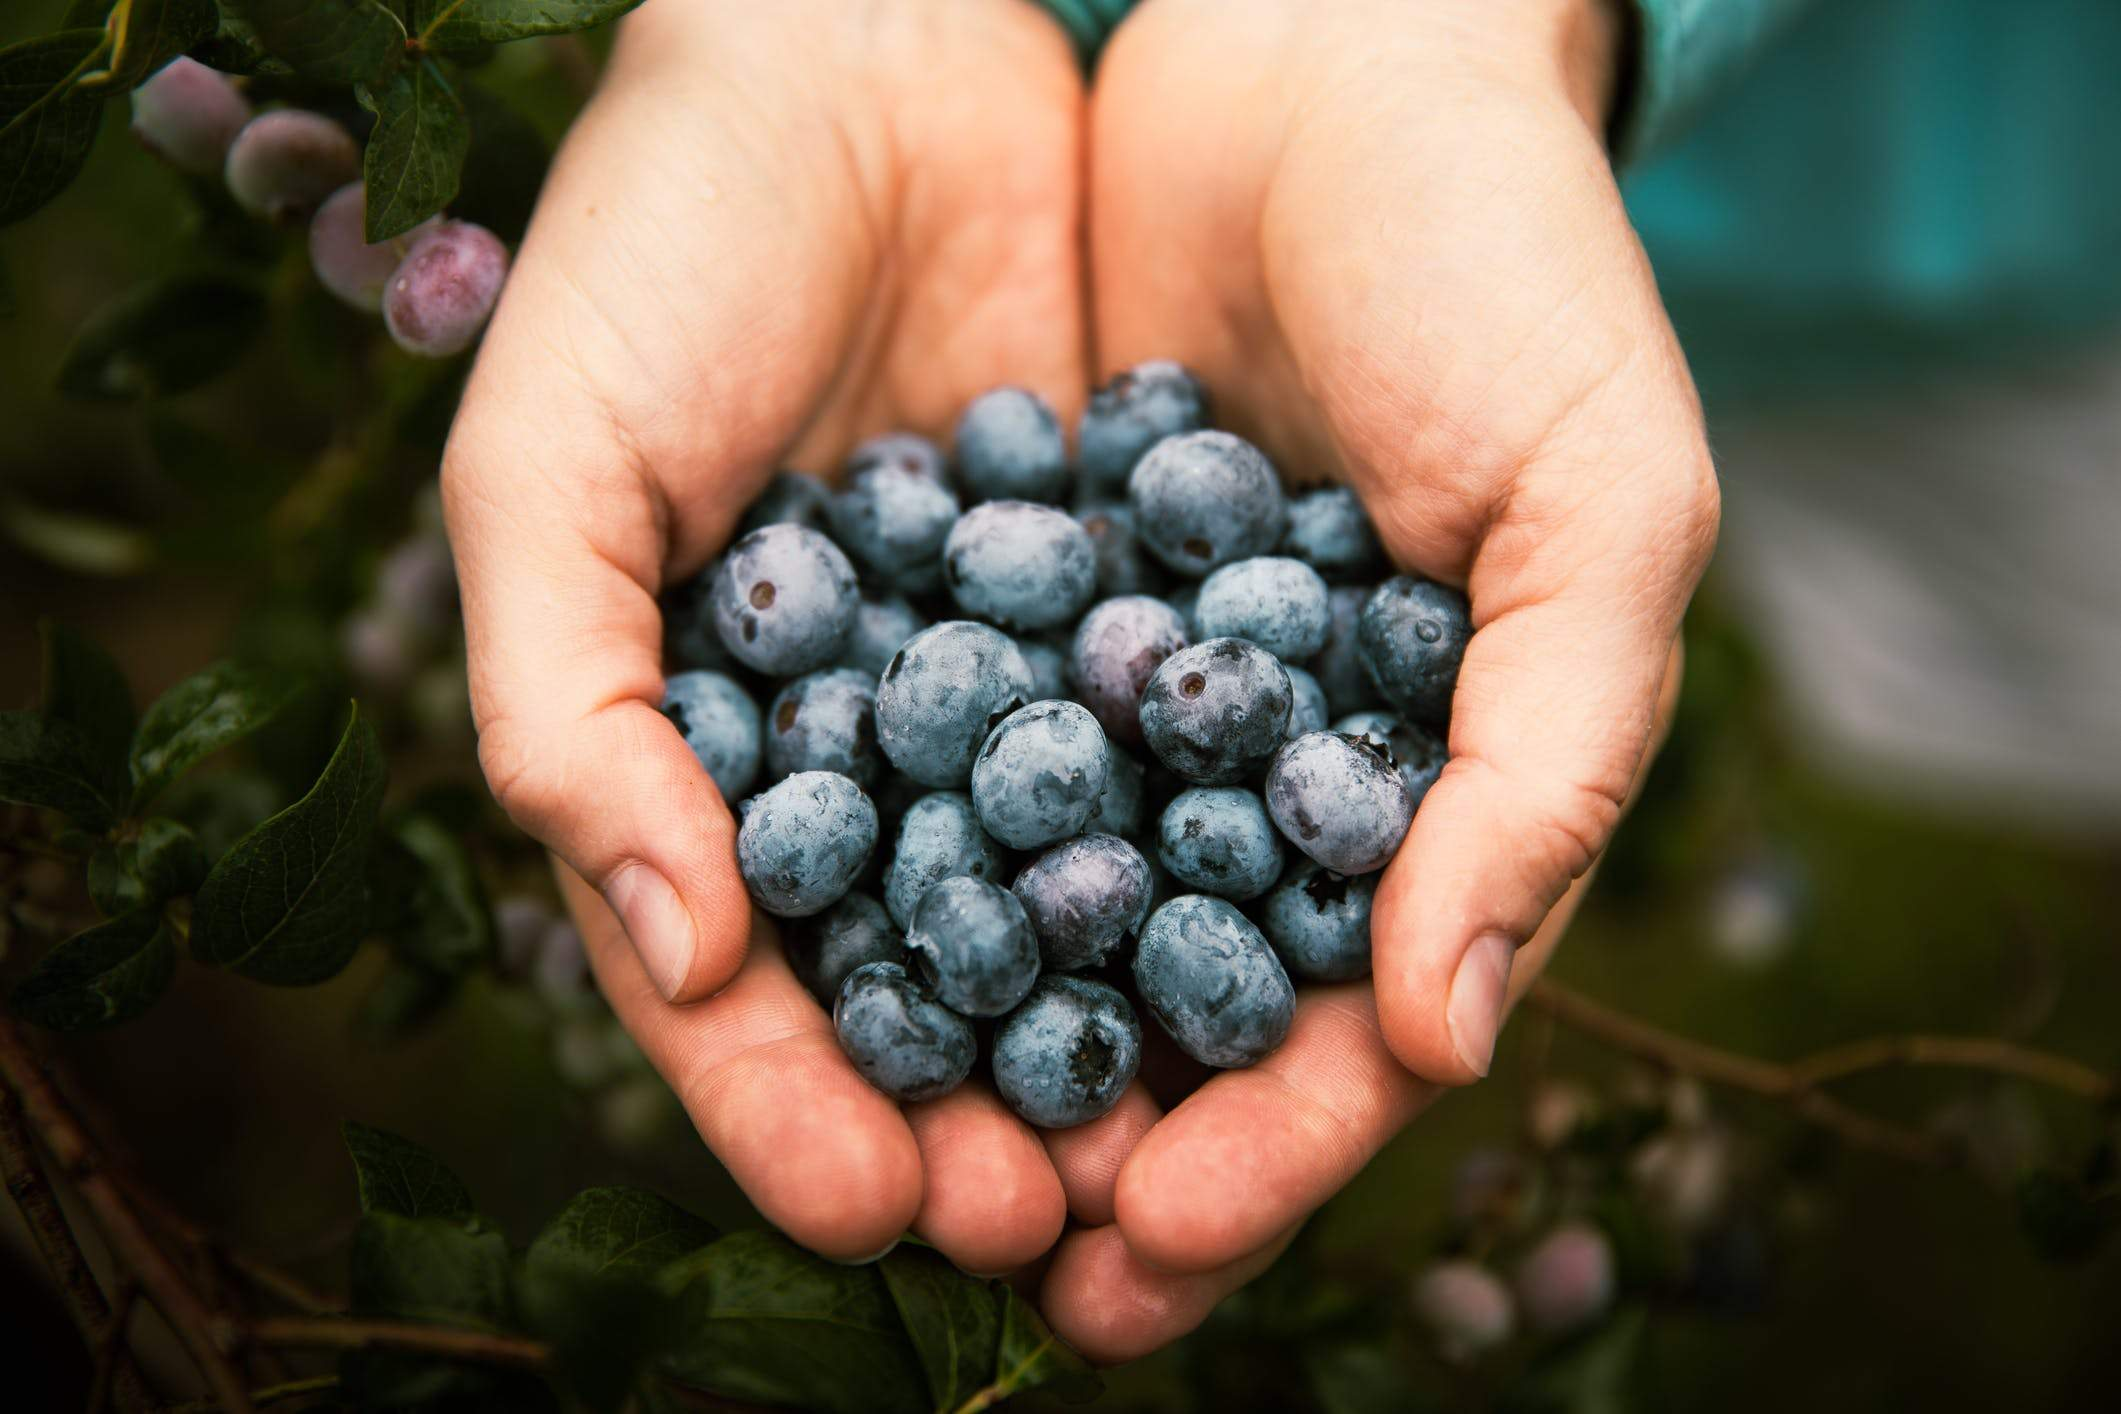 Blueberries: Are They the Next Big Thing in Nutritional Supplements?